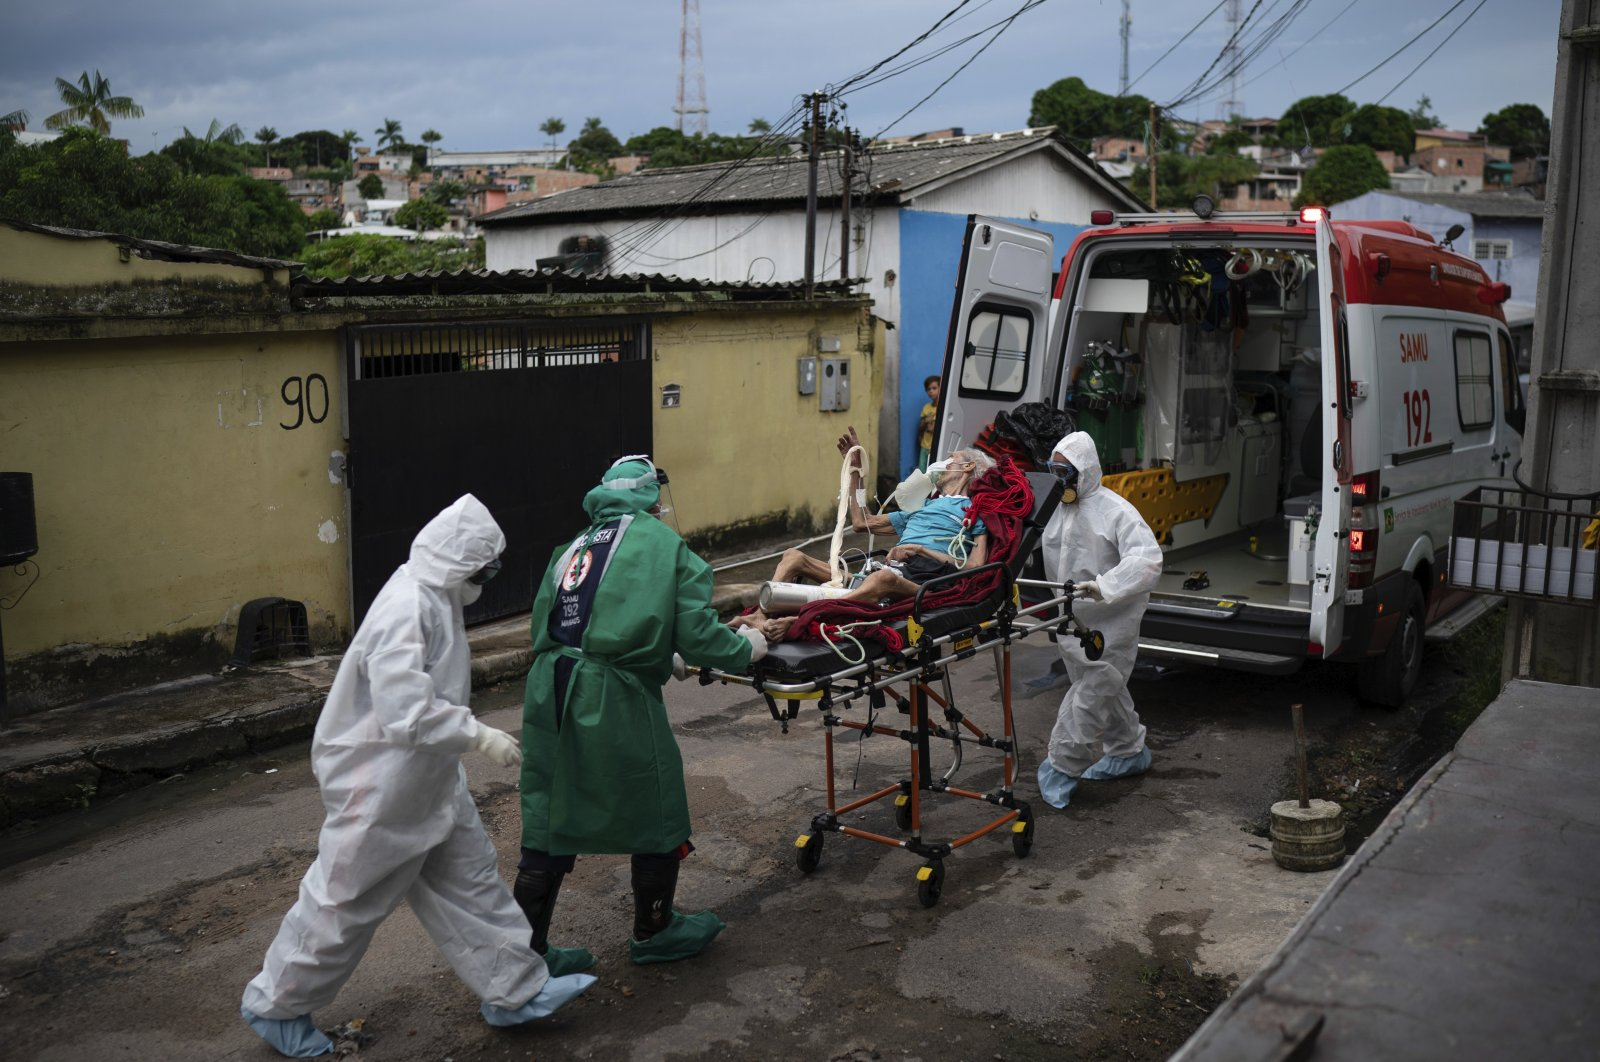 Emergency workers transfer an elderly patient, suspected of having COVID-19, to a hospital in Manaus, Brazil, Wednesday, May 13, 2020. (AP Photo)